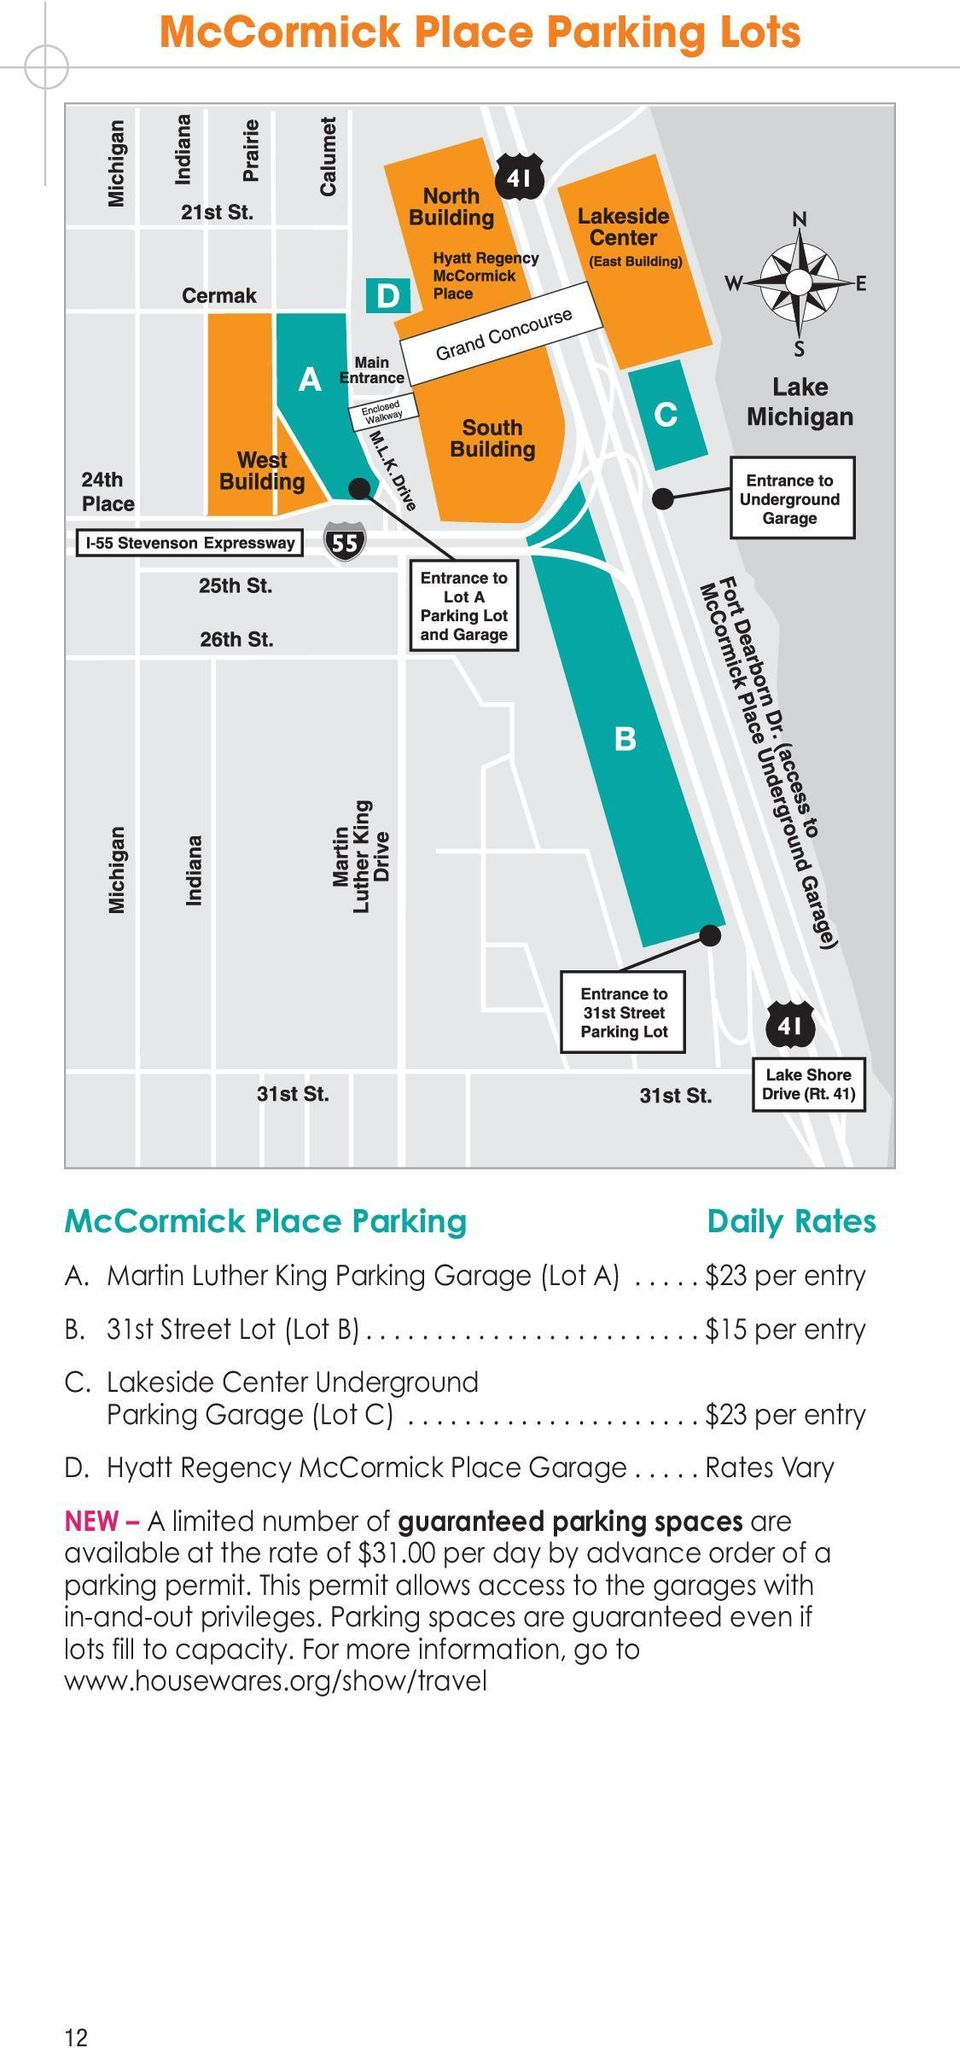 Hyatt Regency McCormick Place Garage..... Rates Vary NEW A limited number of guaranteed parking spaces are available at the rate of $31.